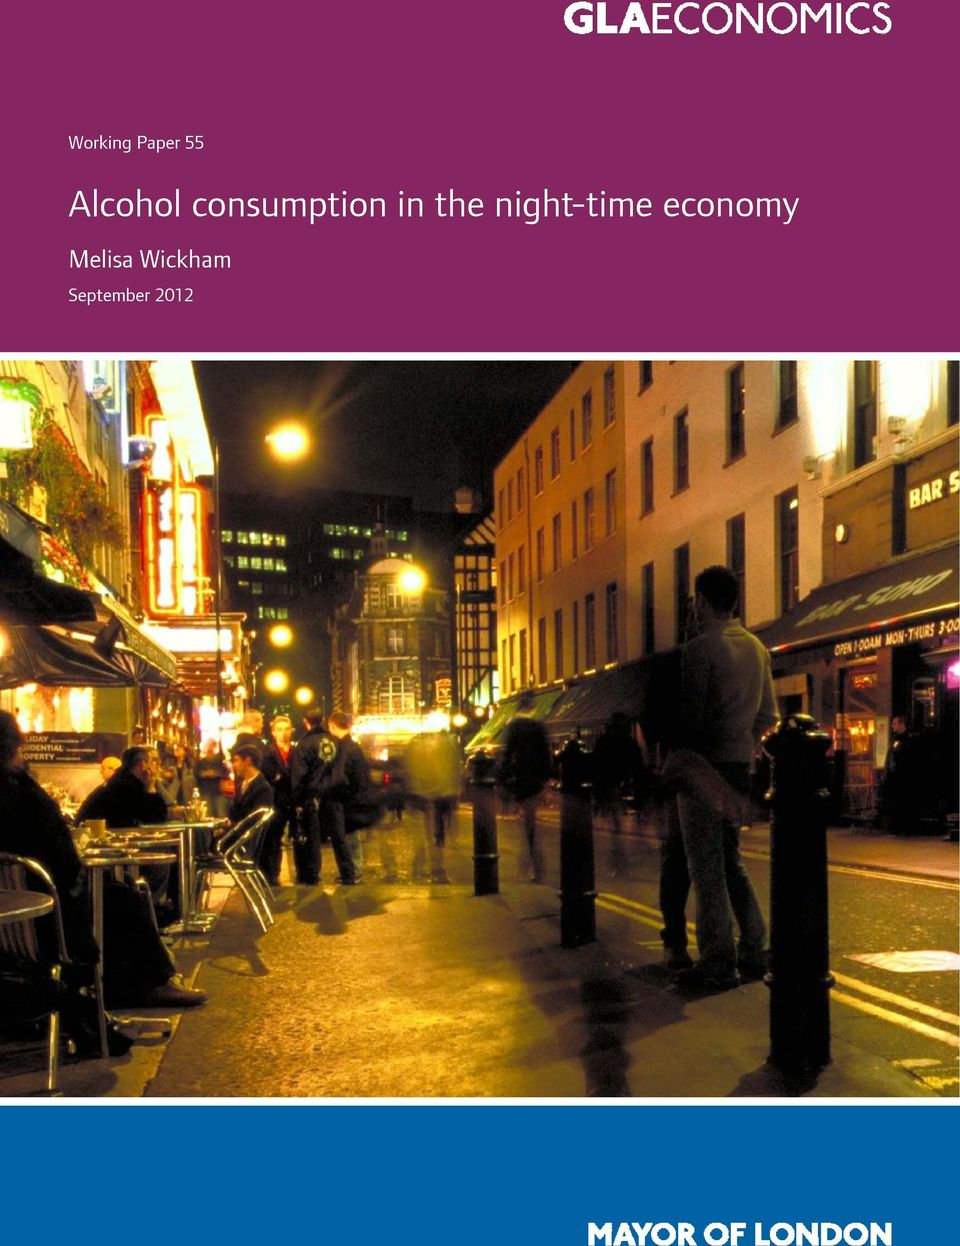 night-time economy